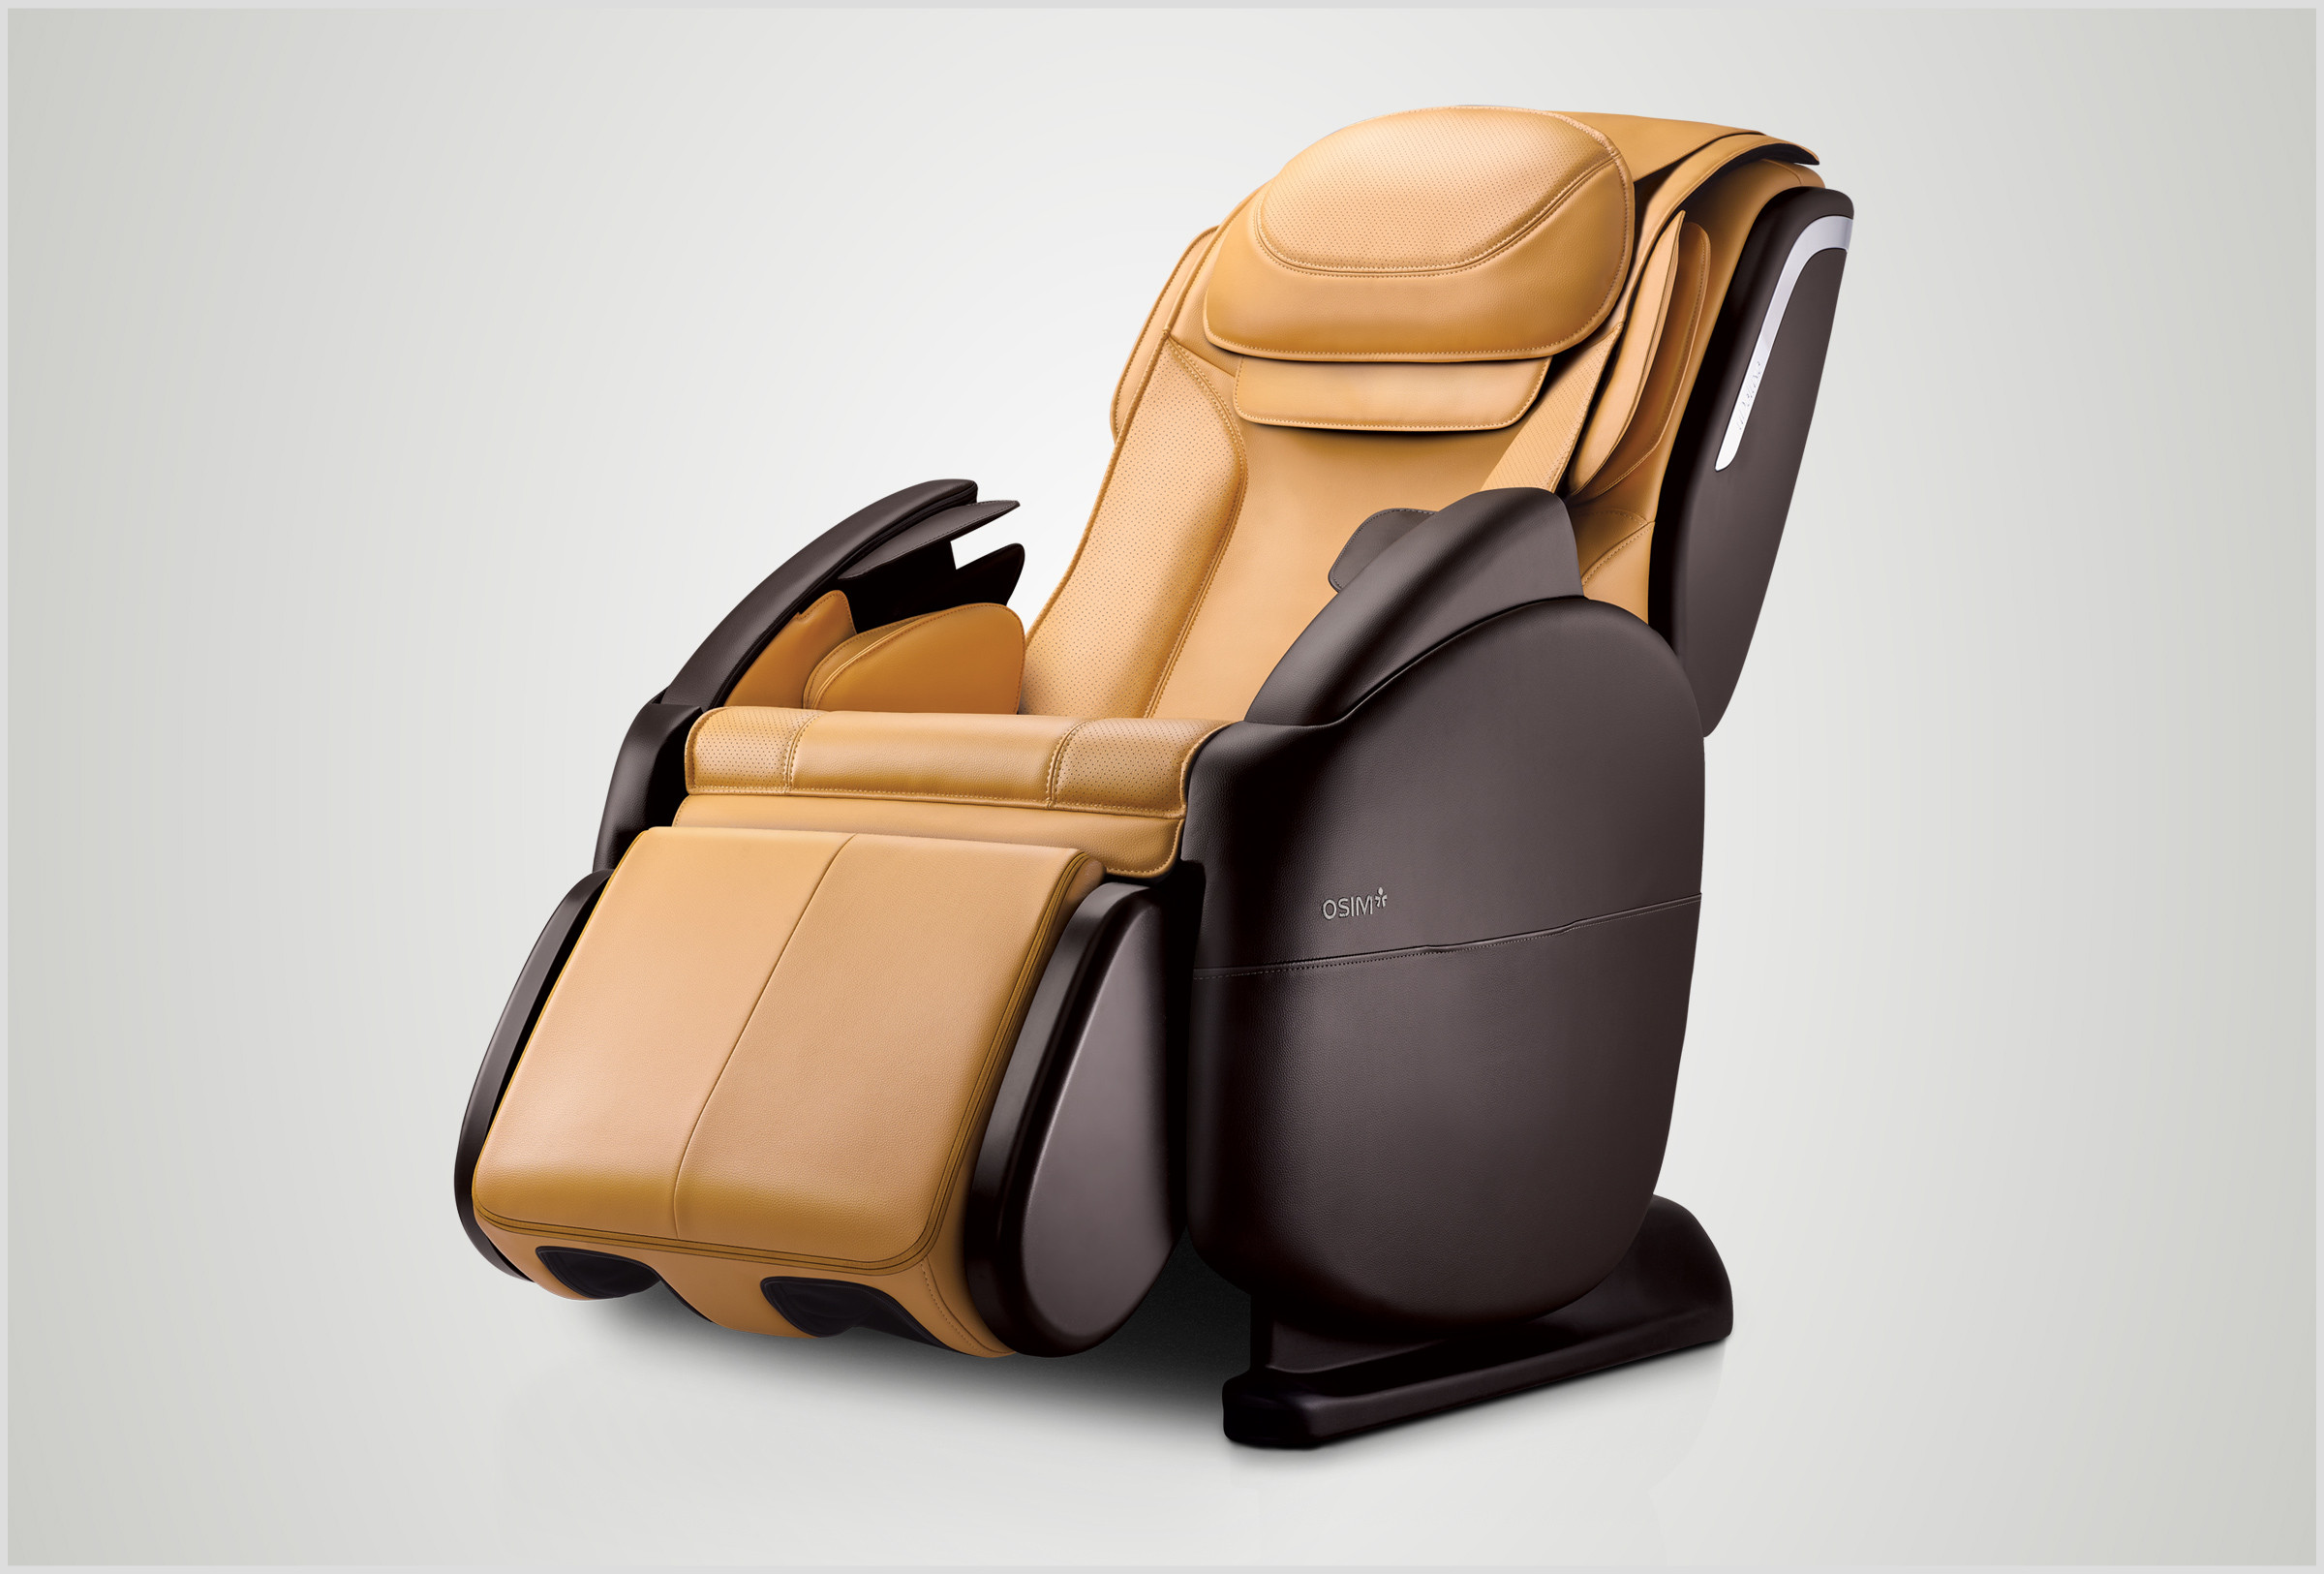 Massage Chair OSIM uDeluxe Massage Chair